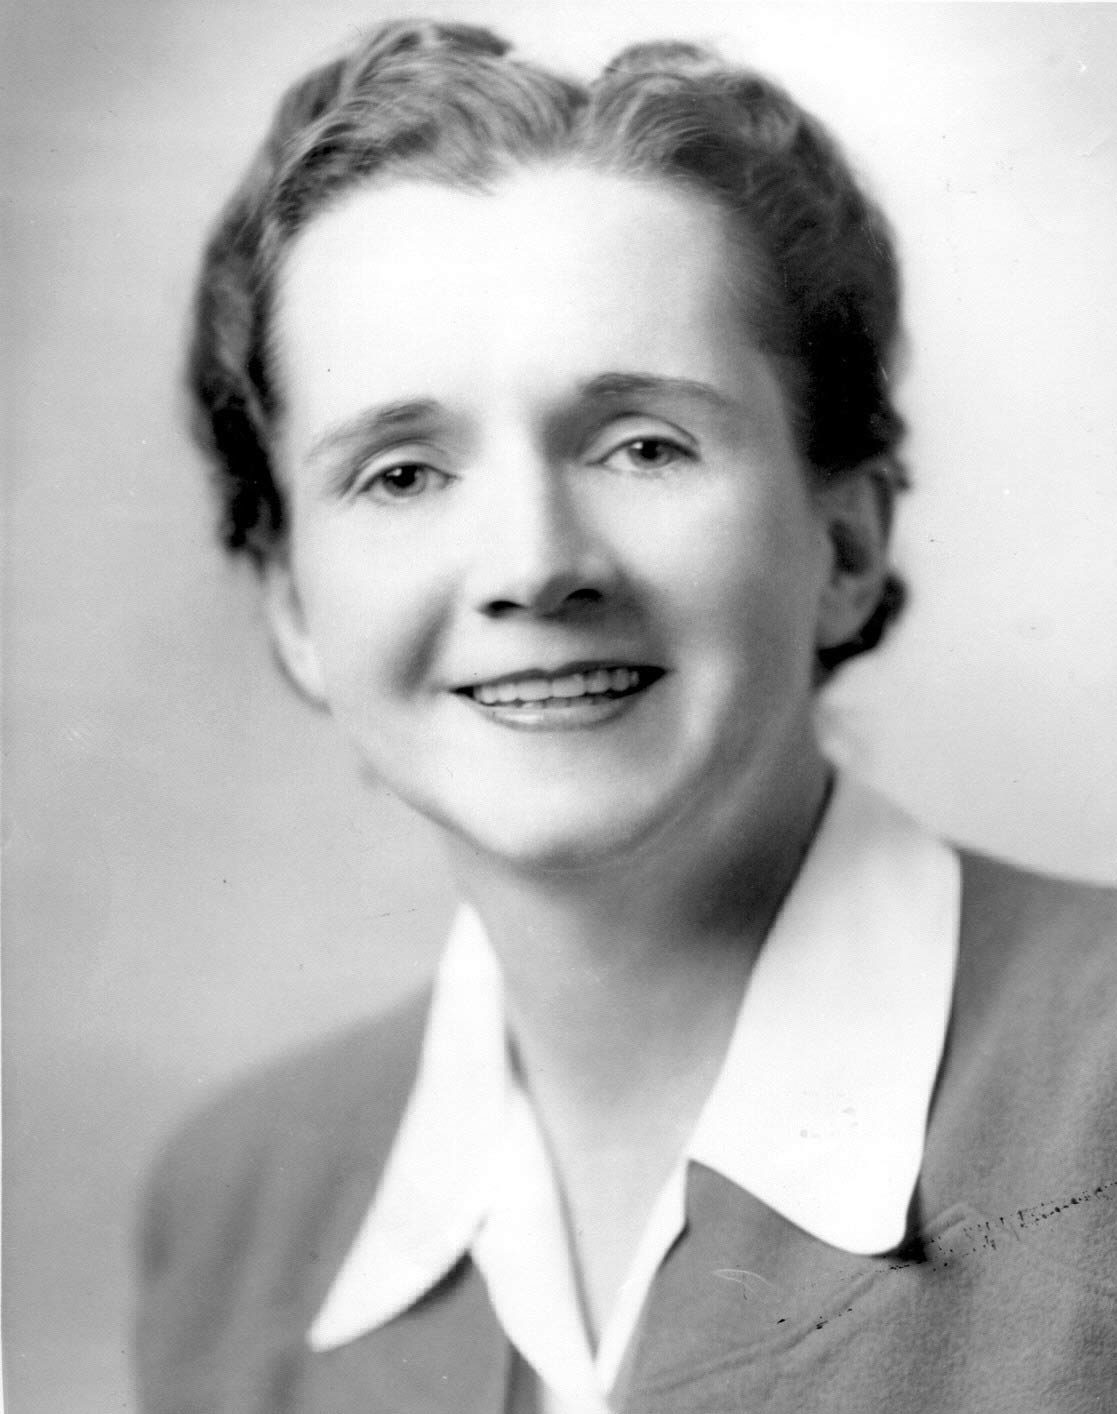 A young Rachel Carson smiles in a black-and-white photo.